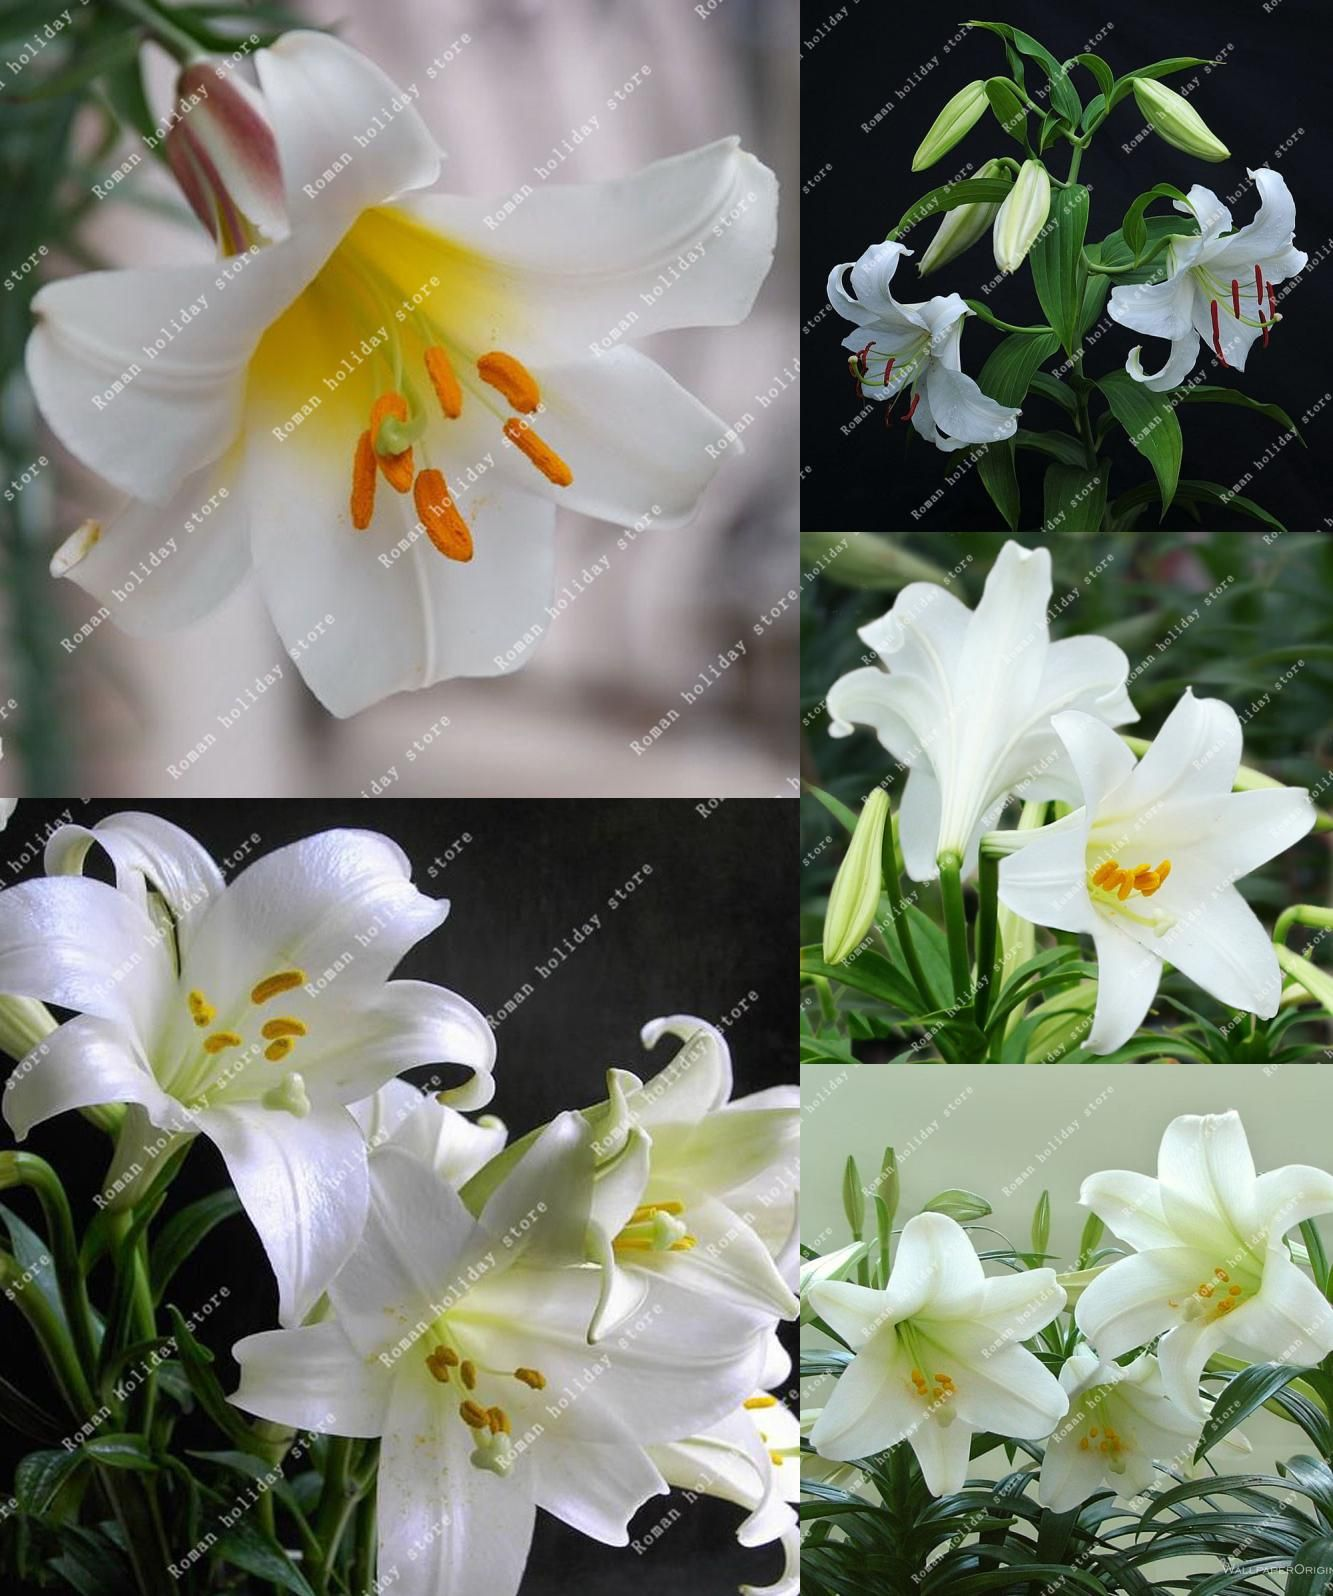 Visit To Buy 100 Pcs Perfume Lily Pure White Lily Plant Seeds